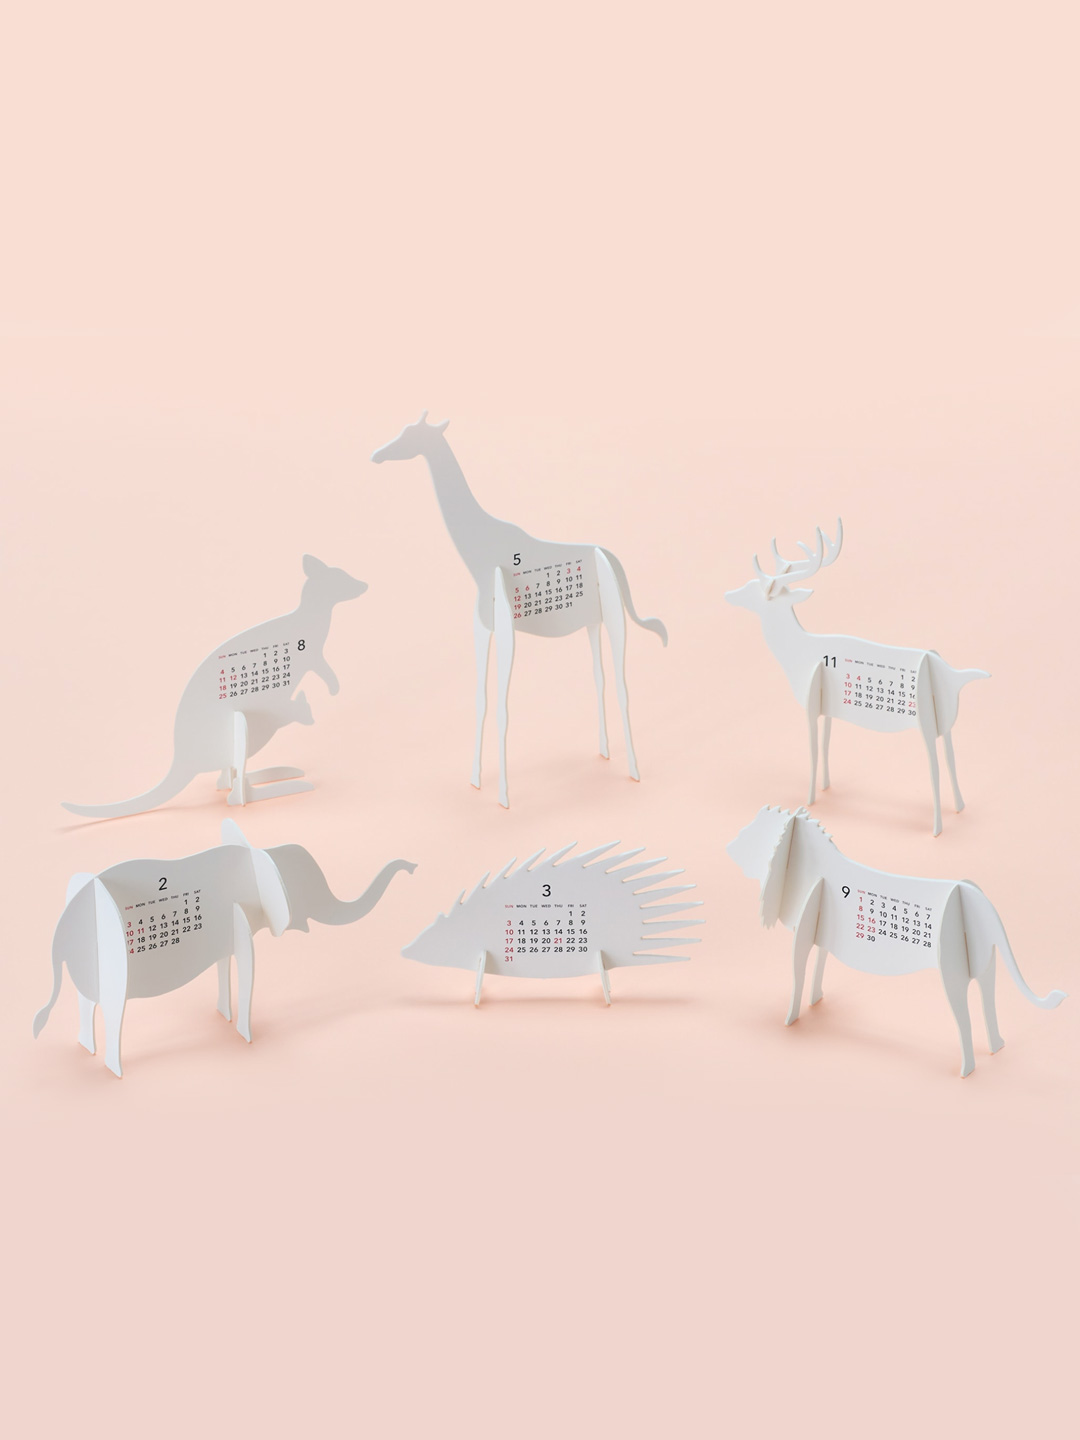 Zoo 2019 Calendar Paper Craft Kit